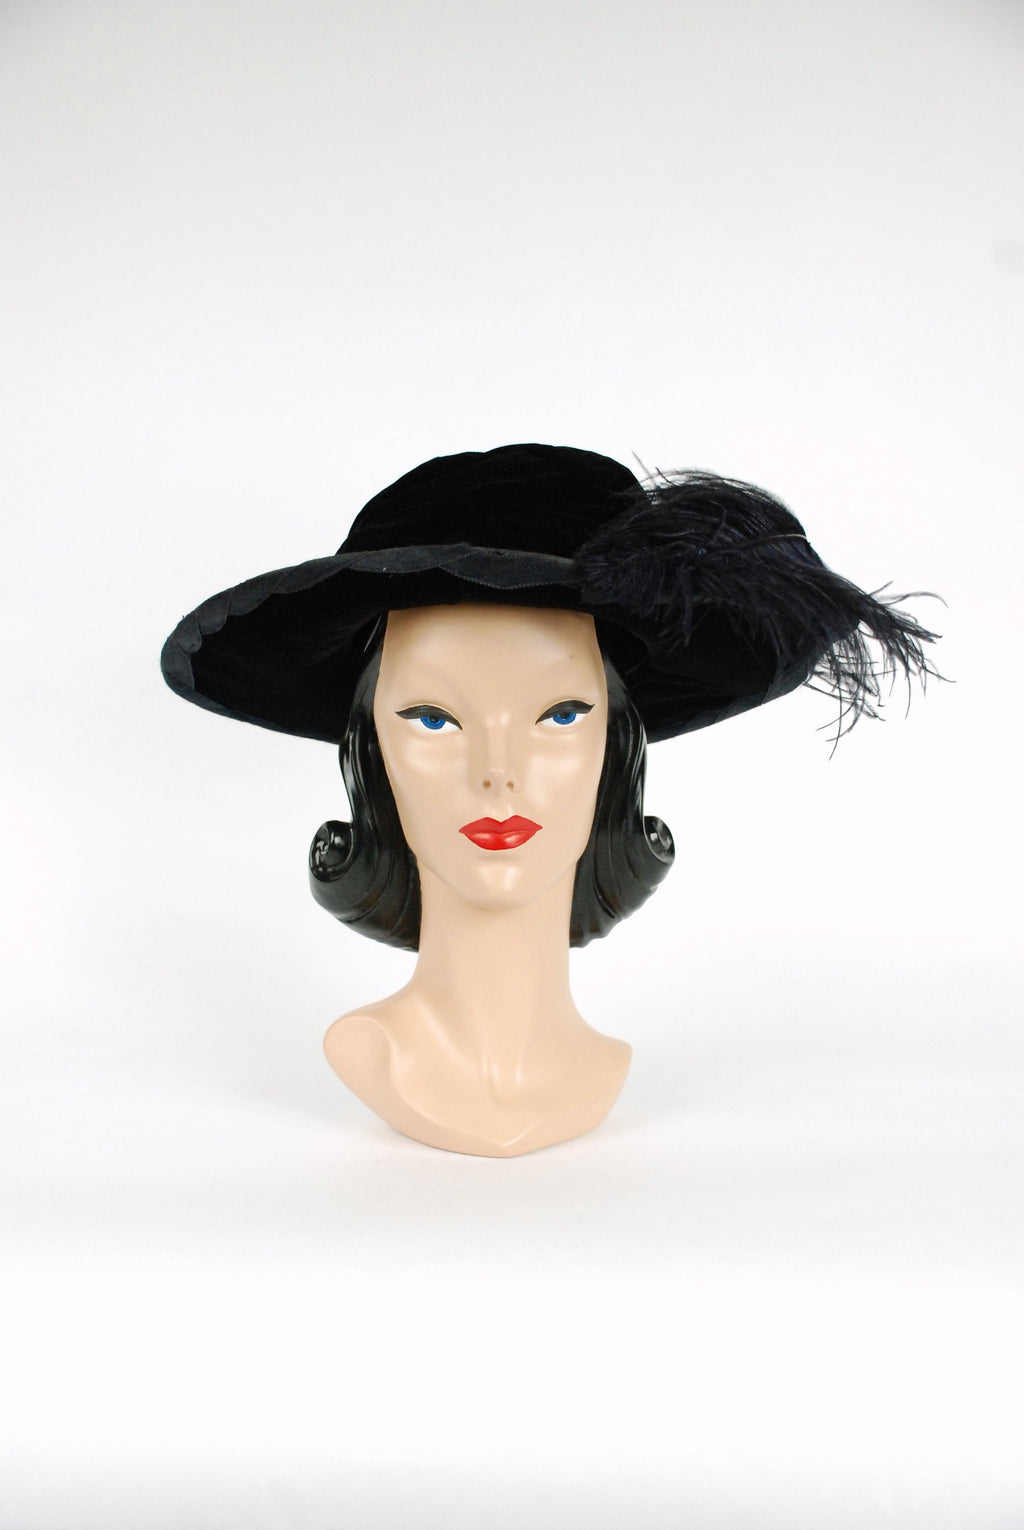 Vintage 1910s Hat - Rare Edwardian Early 1910s  Titanic Era Wide Brimmed Velvet Hat with Large, Low Crown and Ostrich Feather